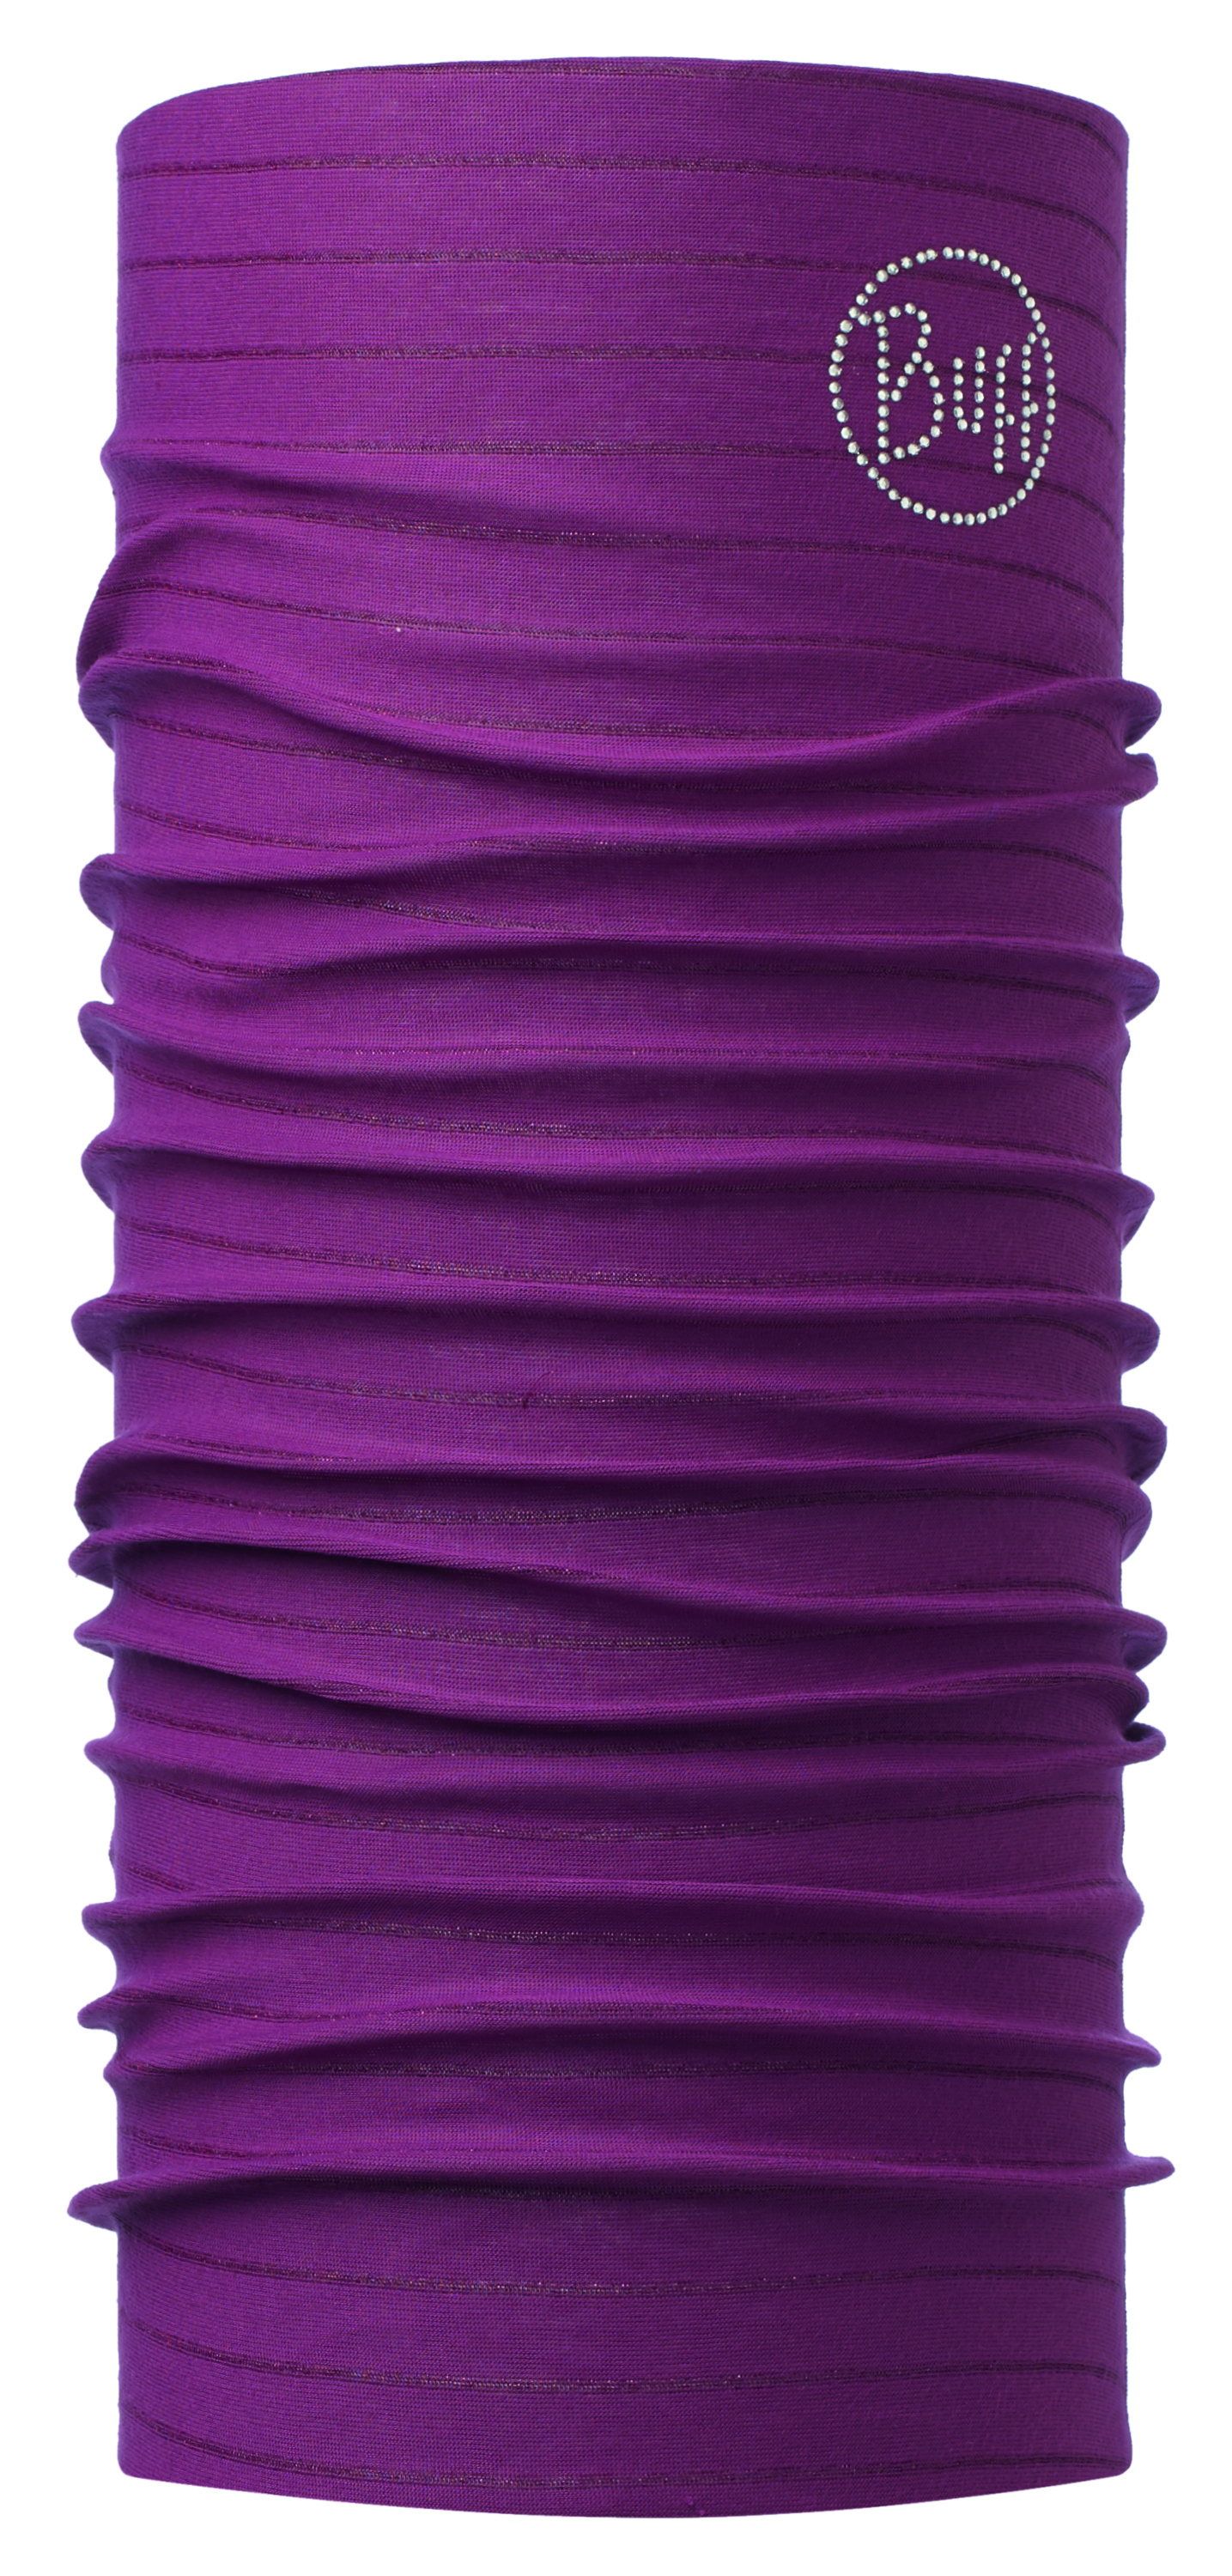 Купить Бандана BUFF ORIGINAL AMARANTH PURPLE CHIC STRIPES Банданы и шарфы Buff ® 1307904